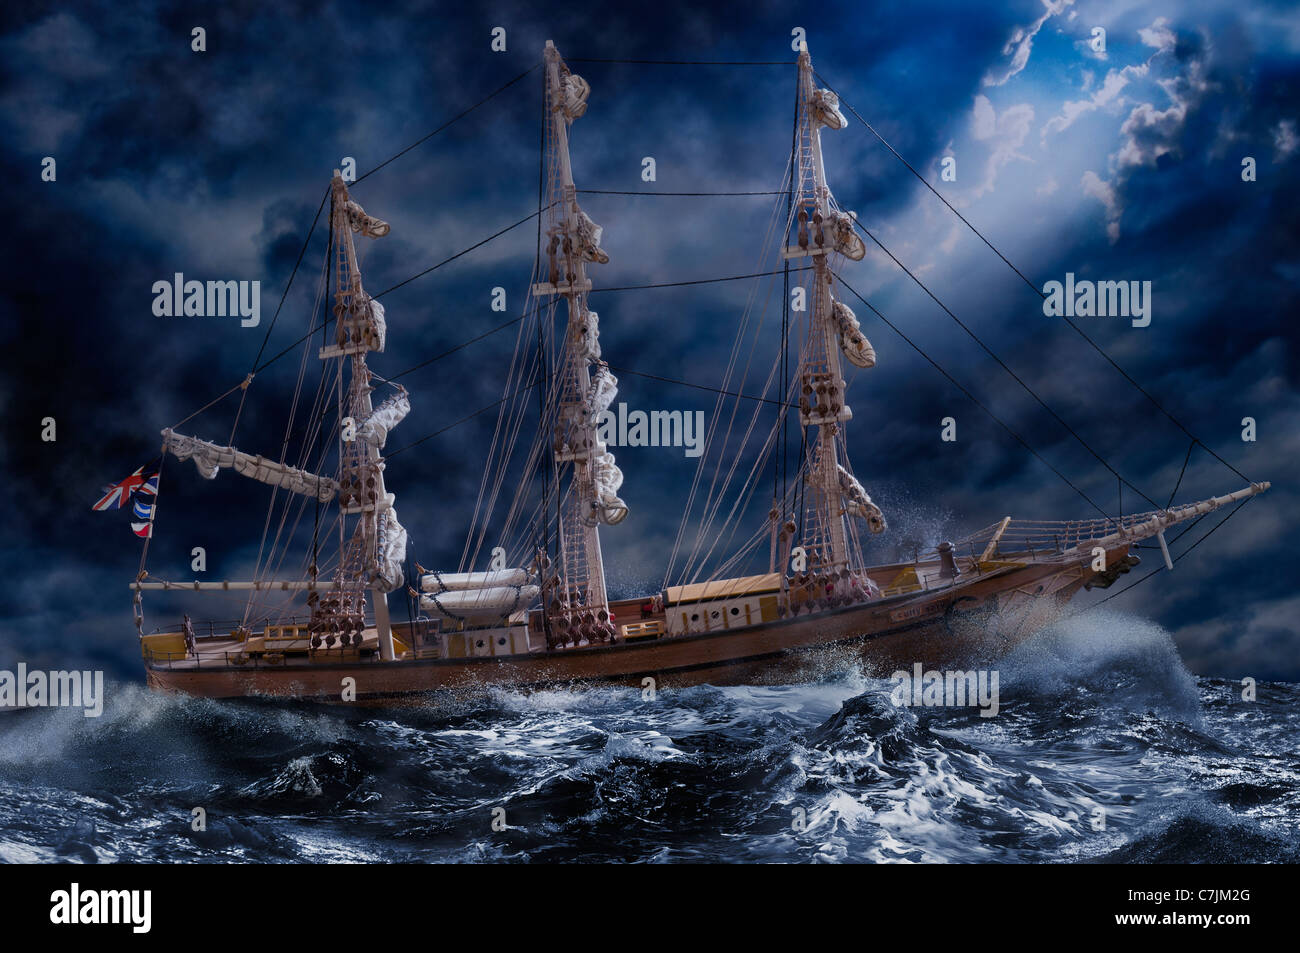 Ornate ship on stormy ocean - Stock Image